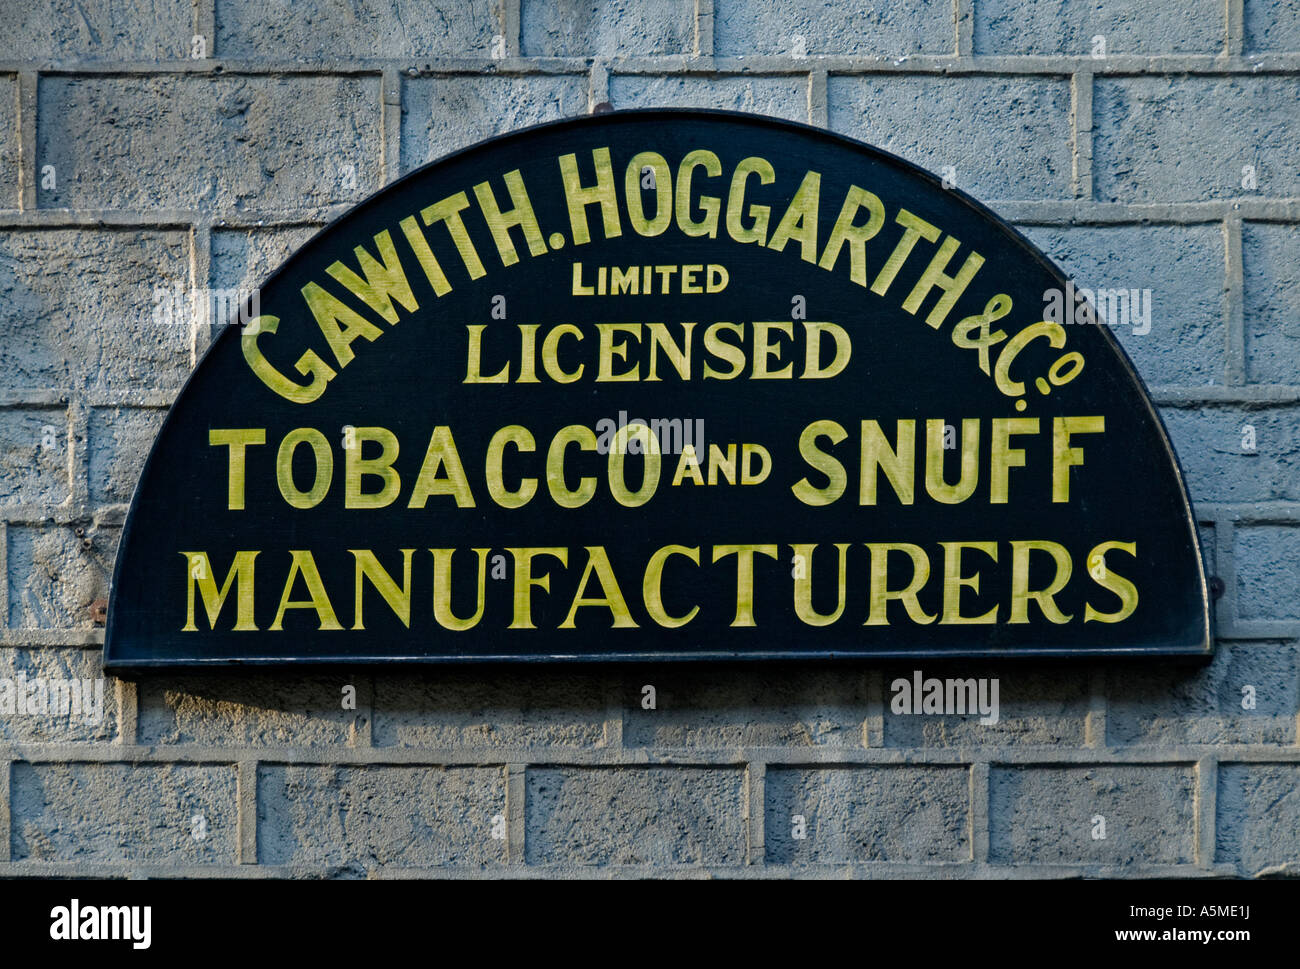 Signboard, Gawith Hoggarth Ltd., licensed tobacco and snuff manufacturers. Lowther Street, Kendal, Cumbria, England, Stock Photo